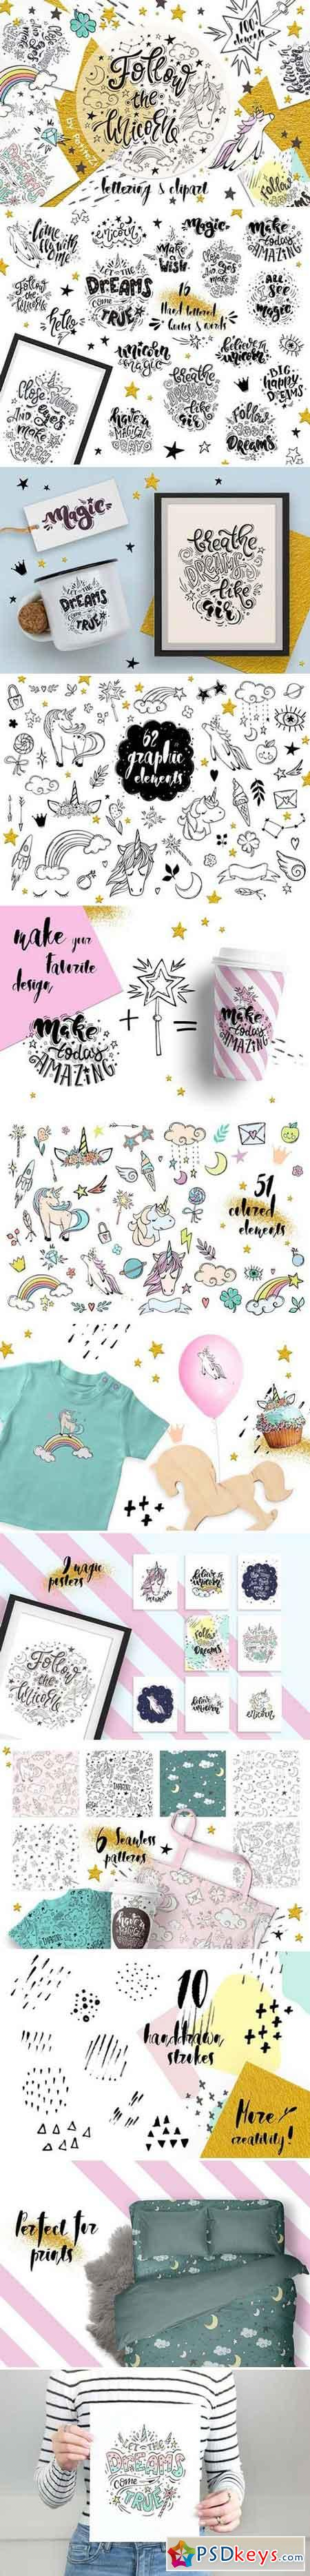 Follow the unicorn clipart&letters 2379484